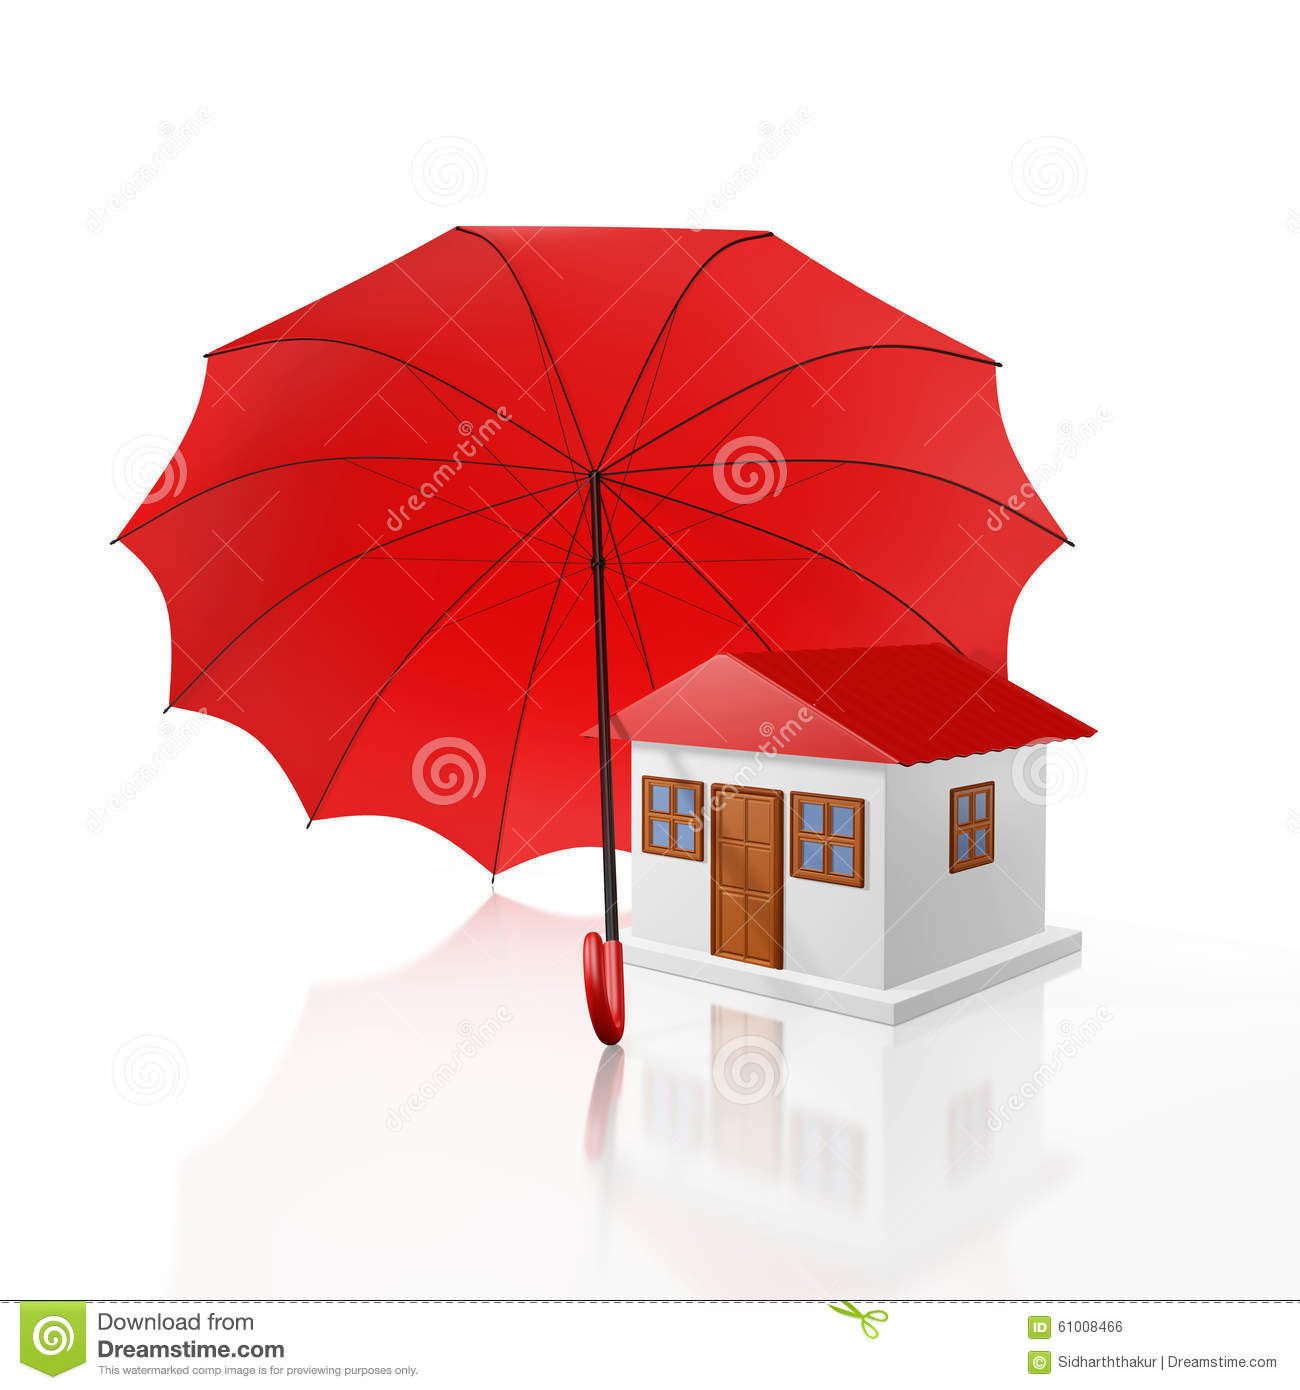 Protected Home Under a Red Umbrella